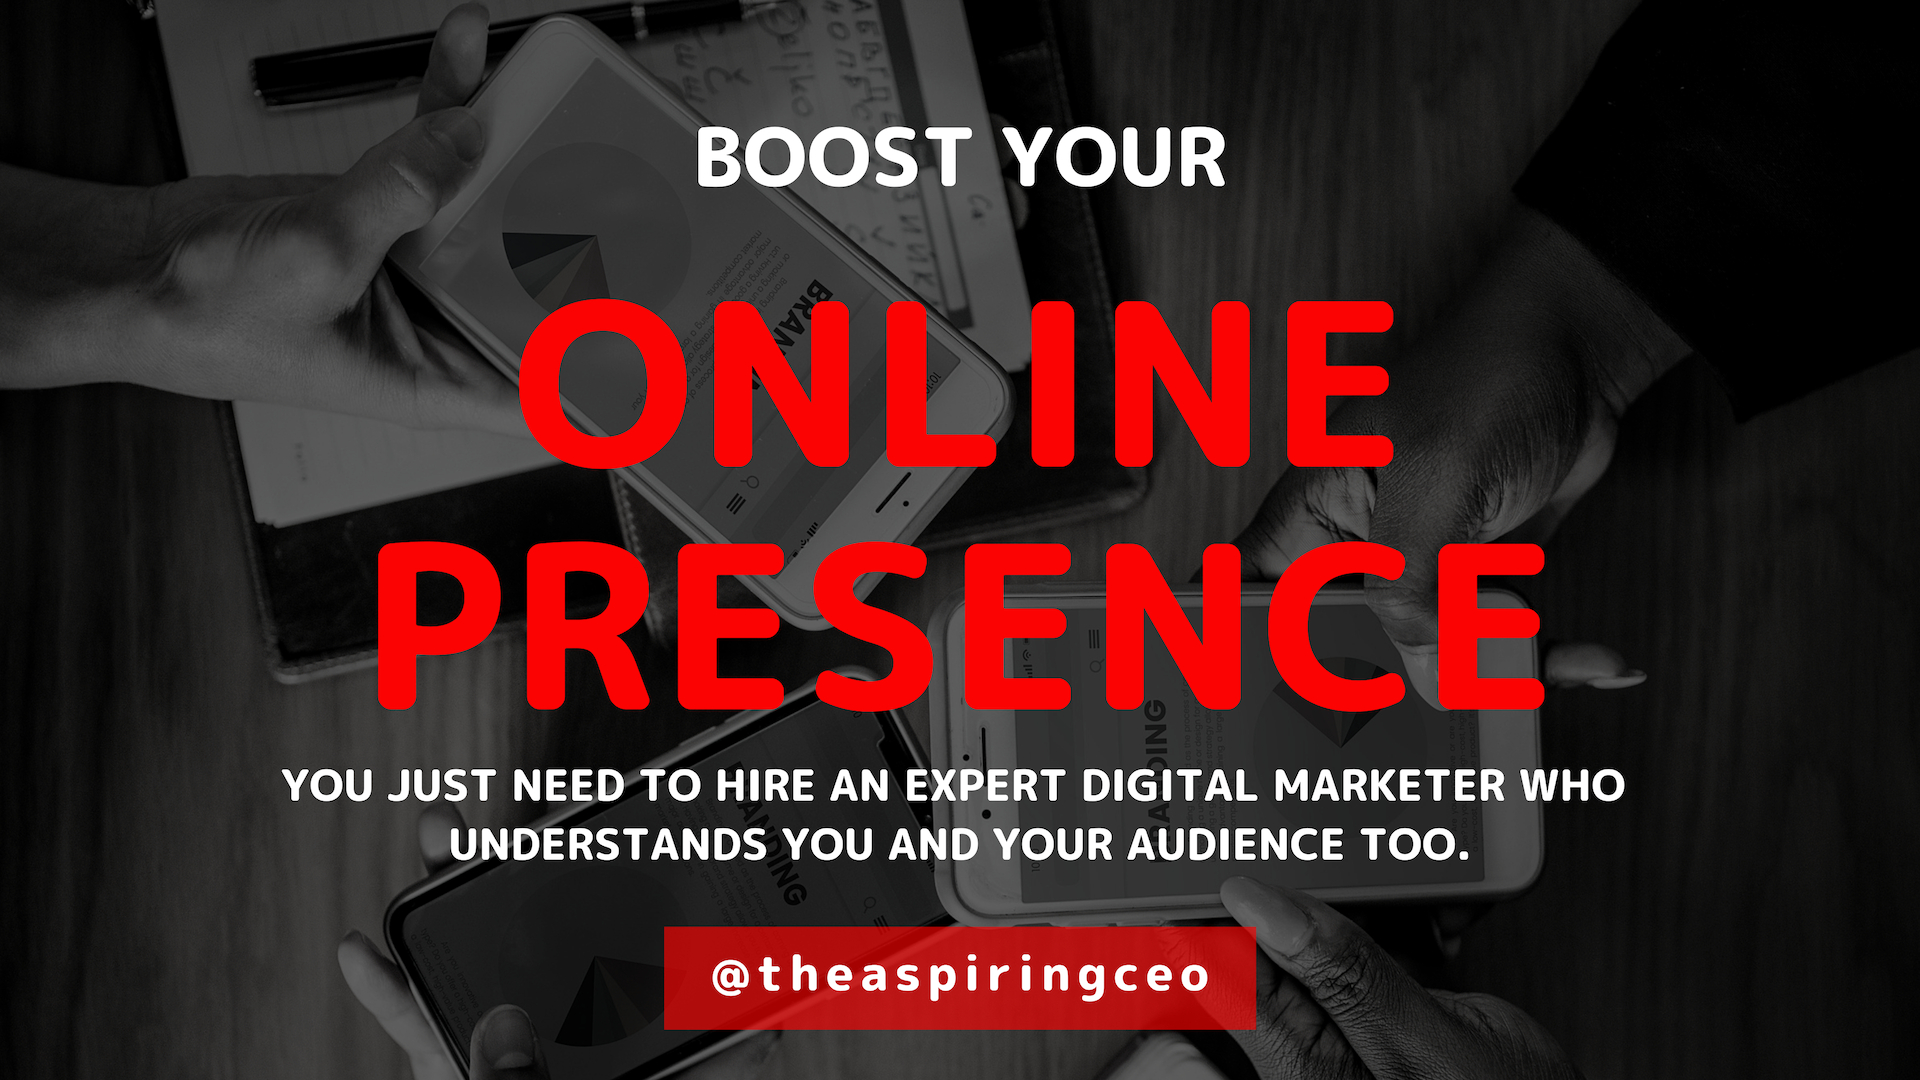 BOOST THE ONLINE PRESENCE OF YOUR BUSINESS BY HIRING THE RIGHT DIGITAL MARKETING EXPERTS